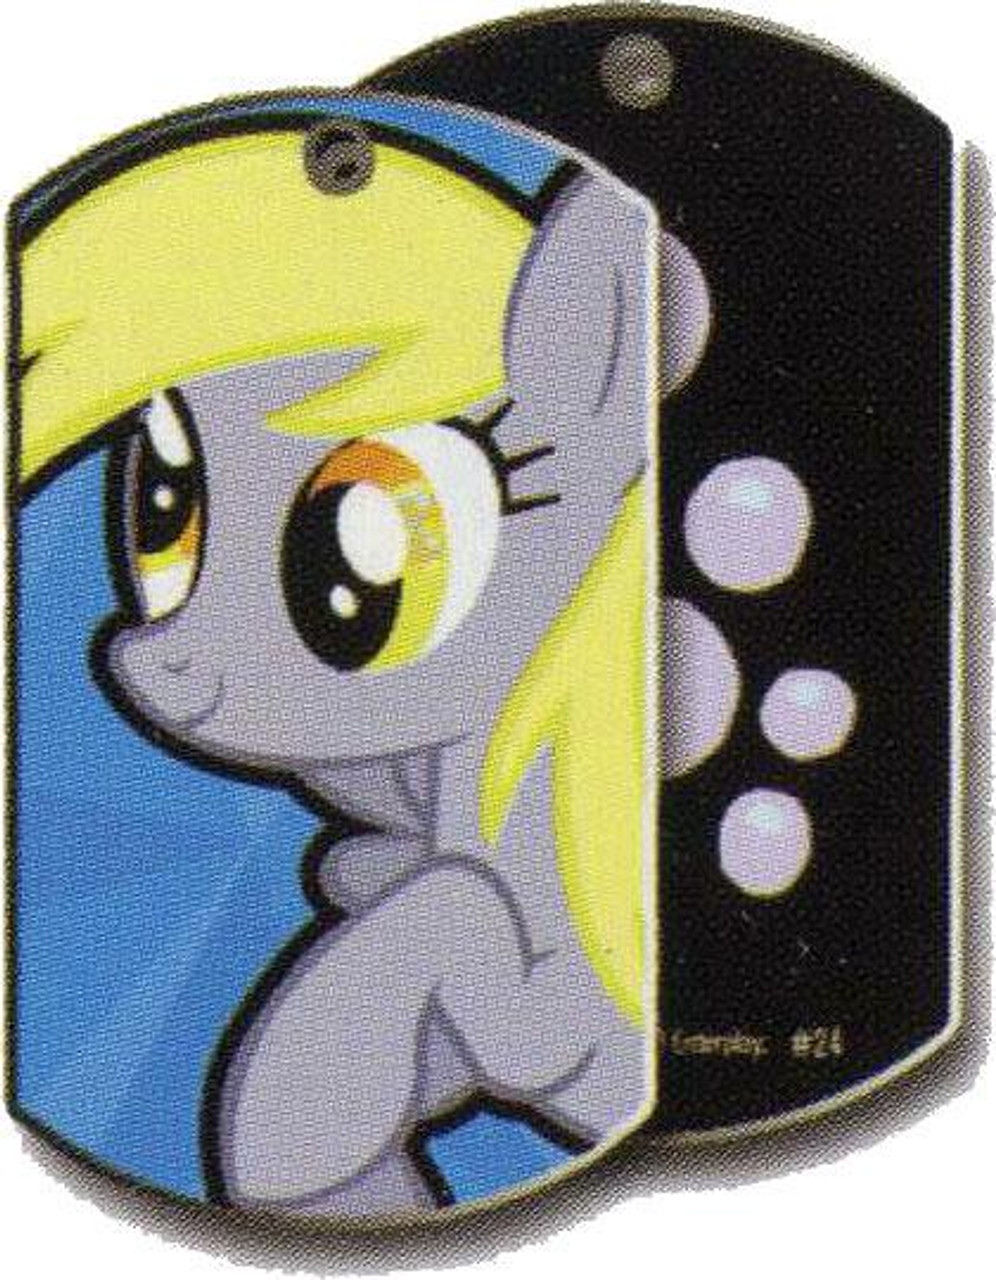 My Little Pony Friendship is Magic Dog Tags Derpy Hooves Dog Tag #24 [Loose]